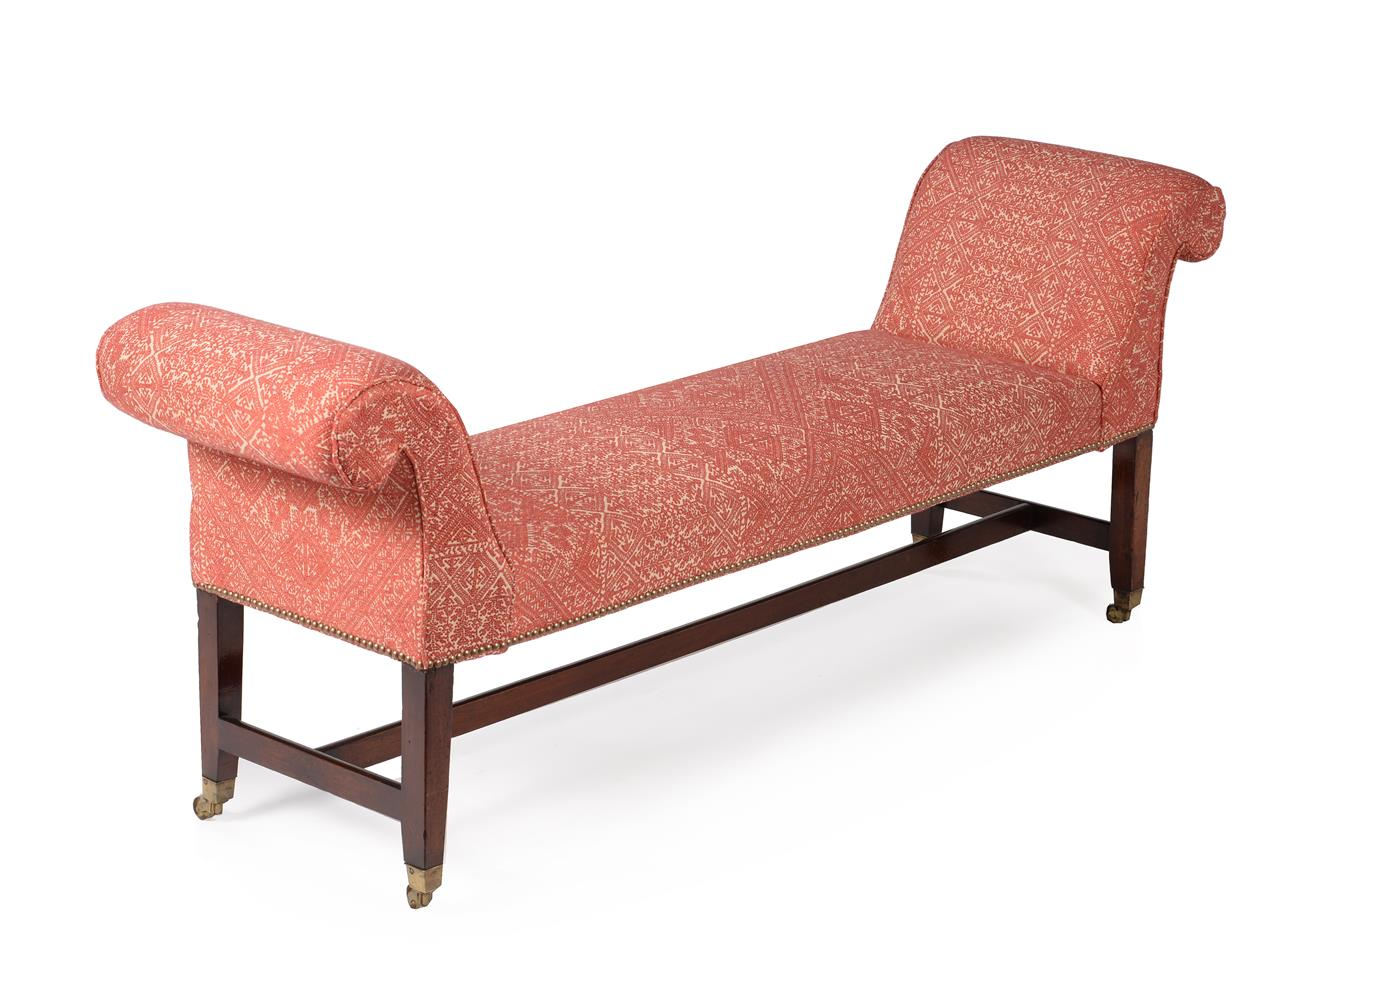 A MAHOGANY AND UPHOLSTERED WINDOW SEAT, CIRCA 1790 AND LATER - Image 3 of 3